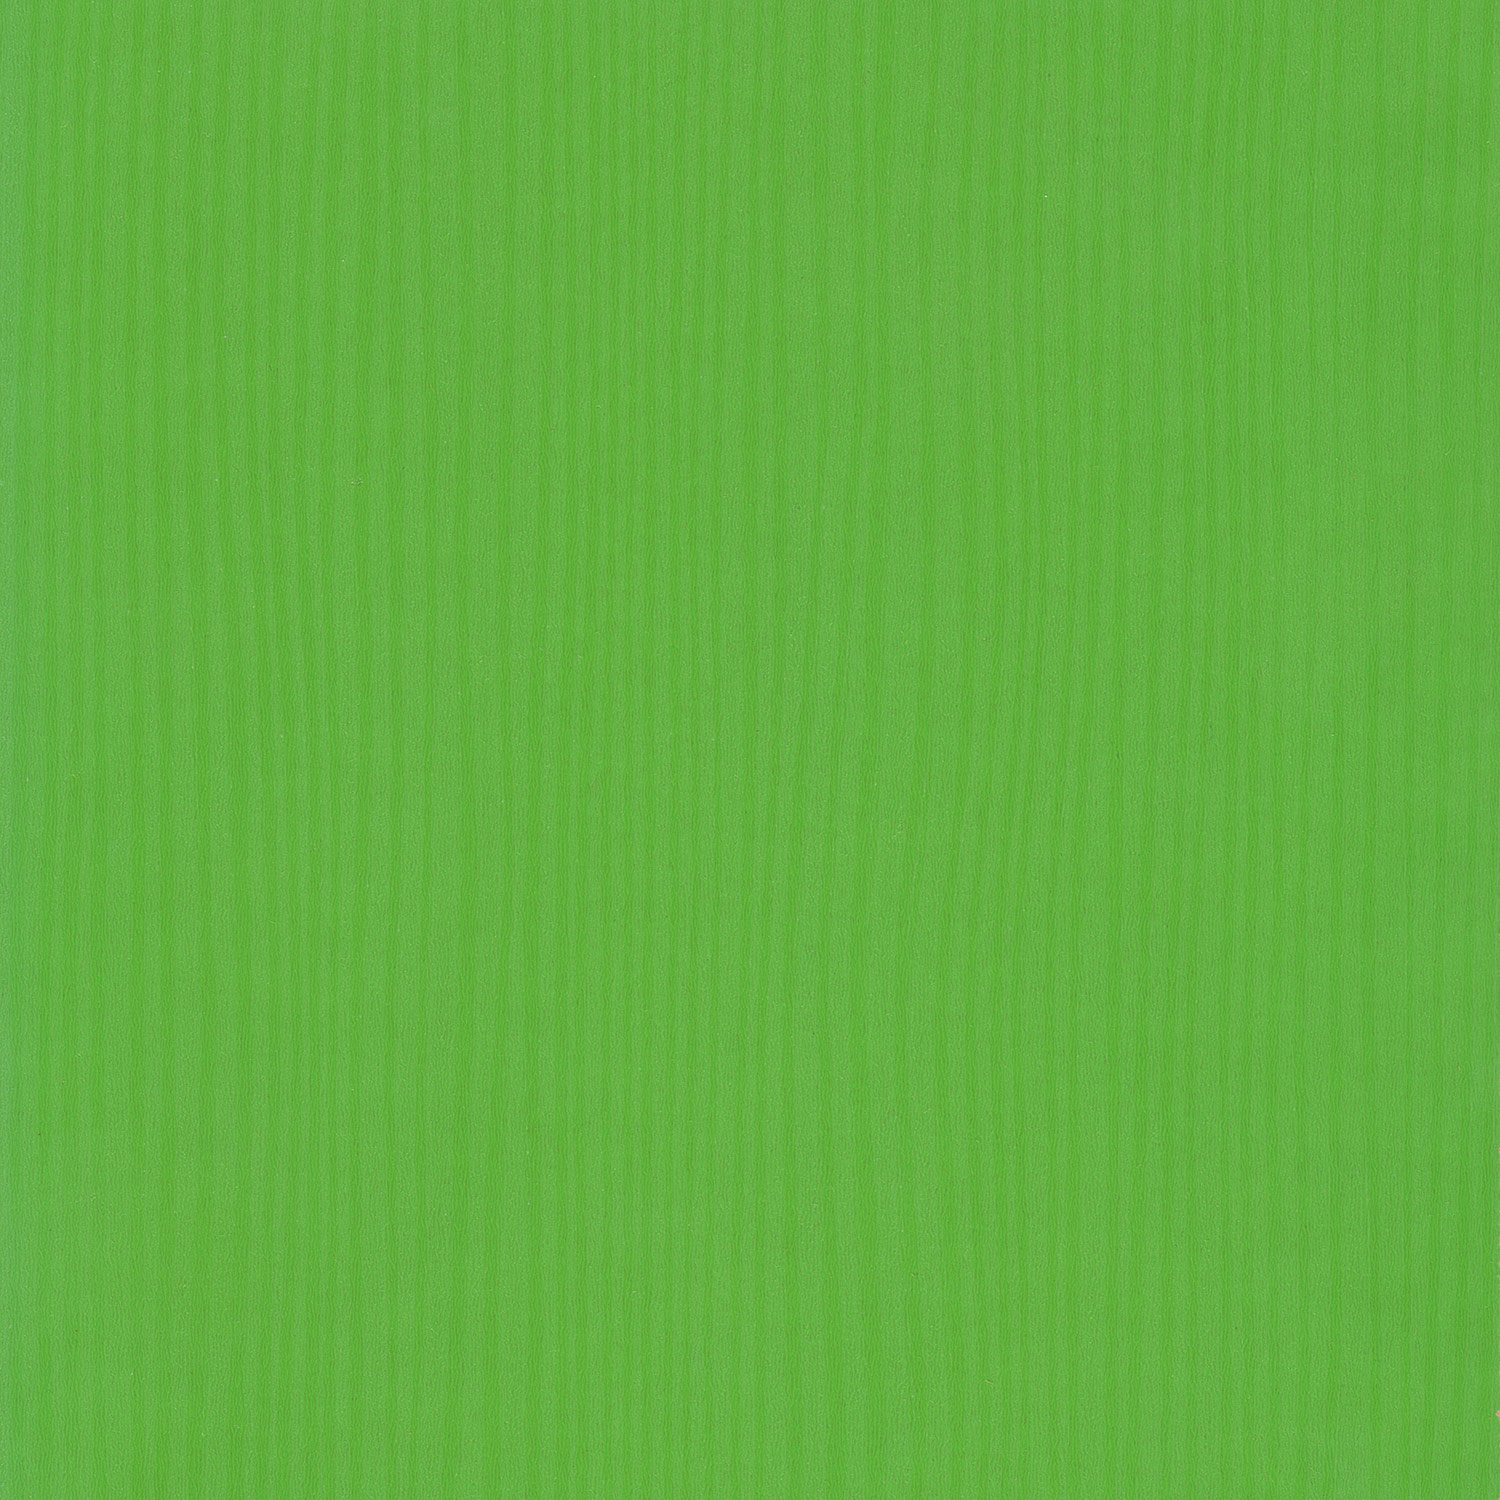 3D Painted Fiberboard Green / Clear 10